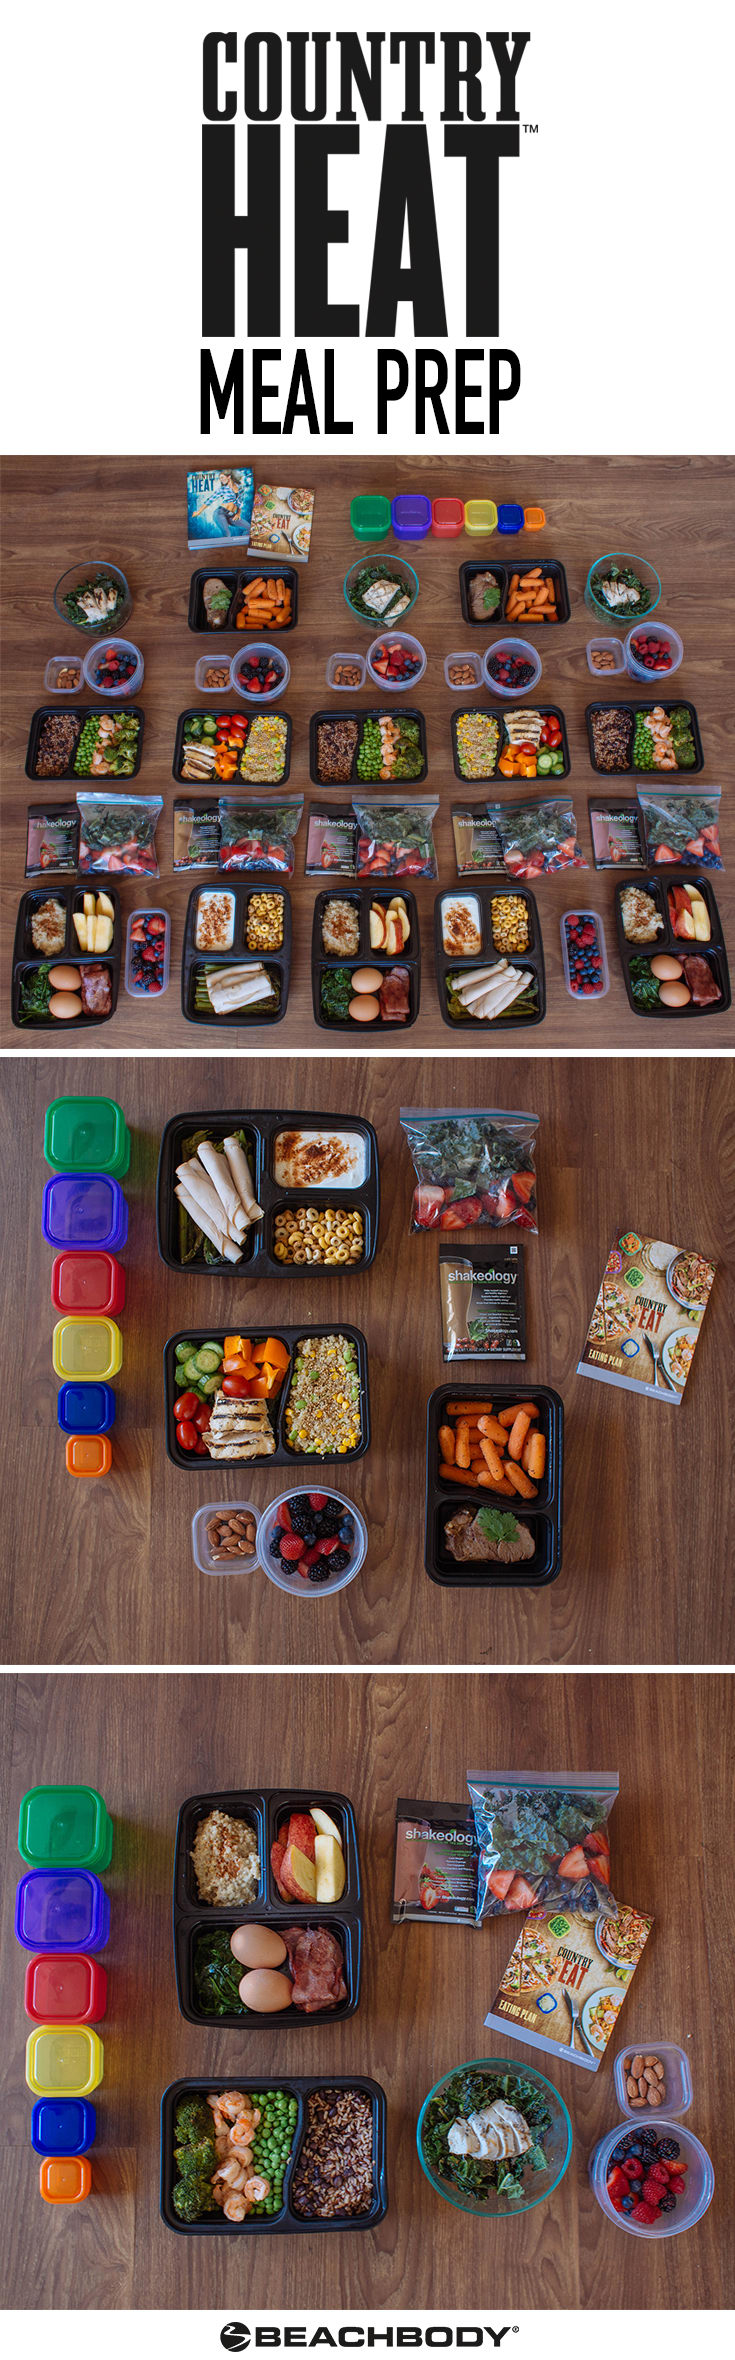 Country Heat Meal Prep for the 1,800–2,099 Calorie Level | BeachbodyBlog.com